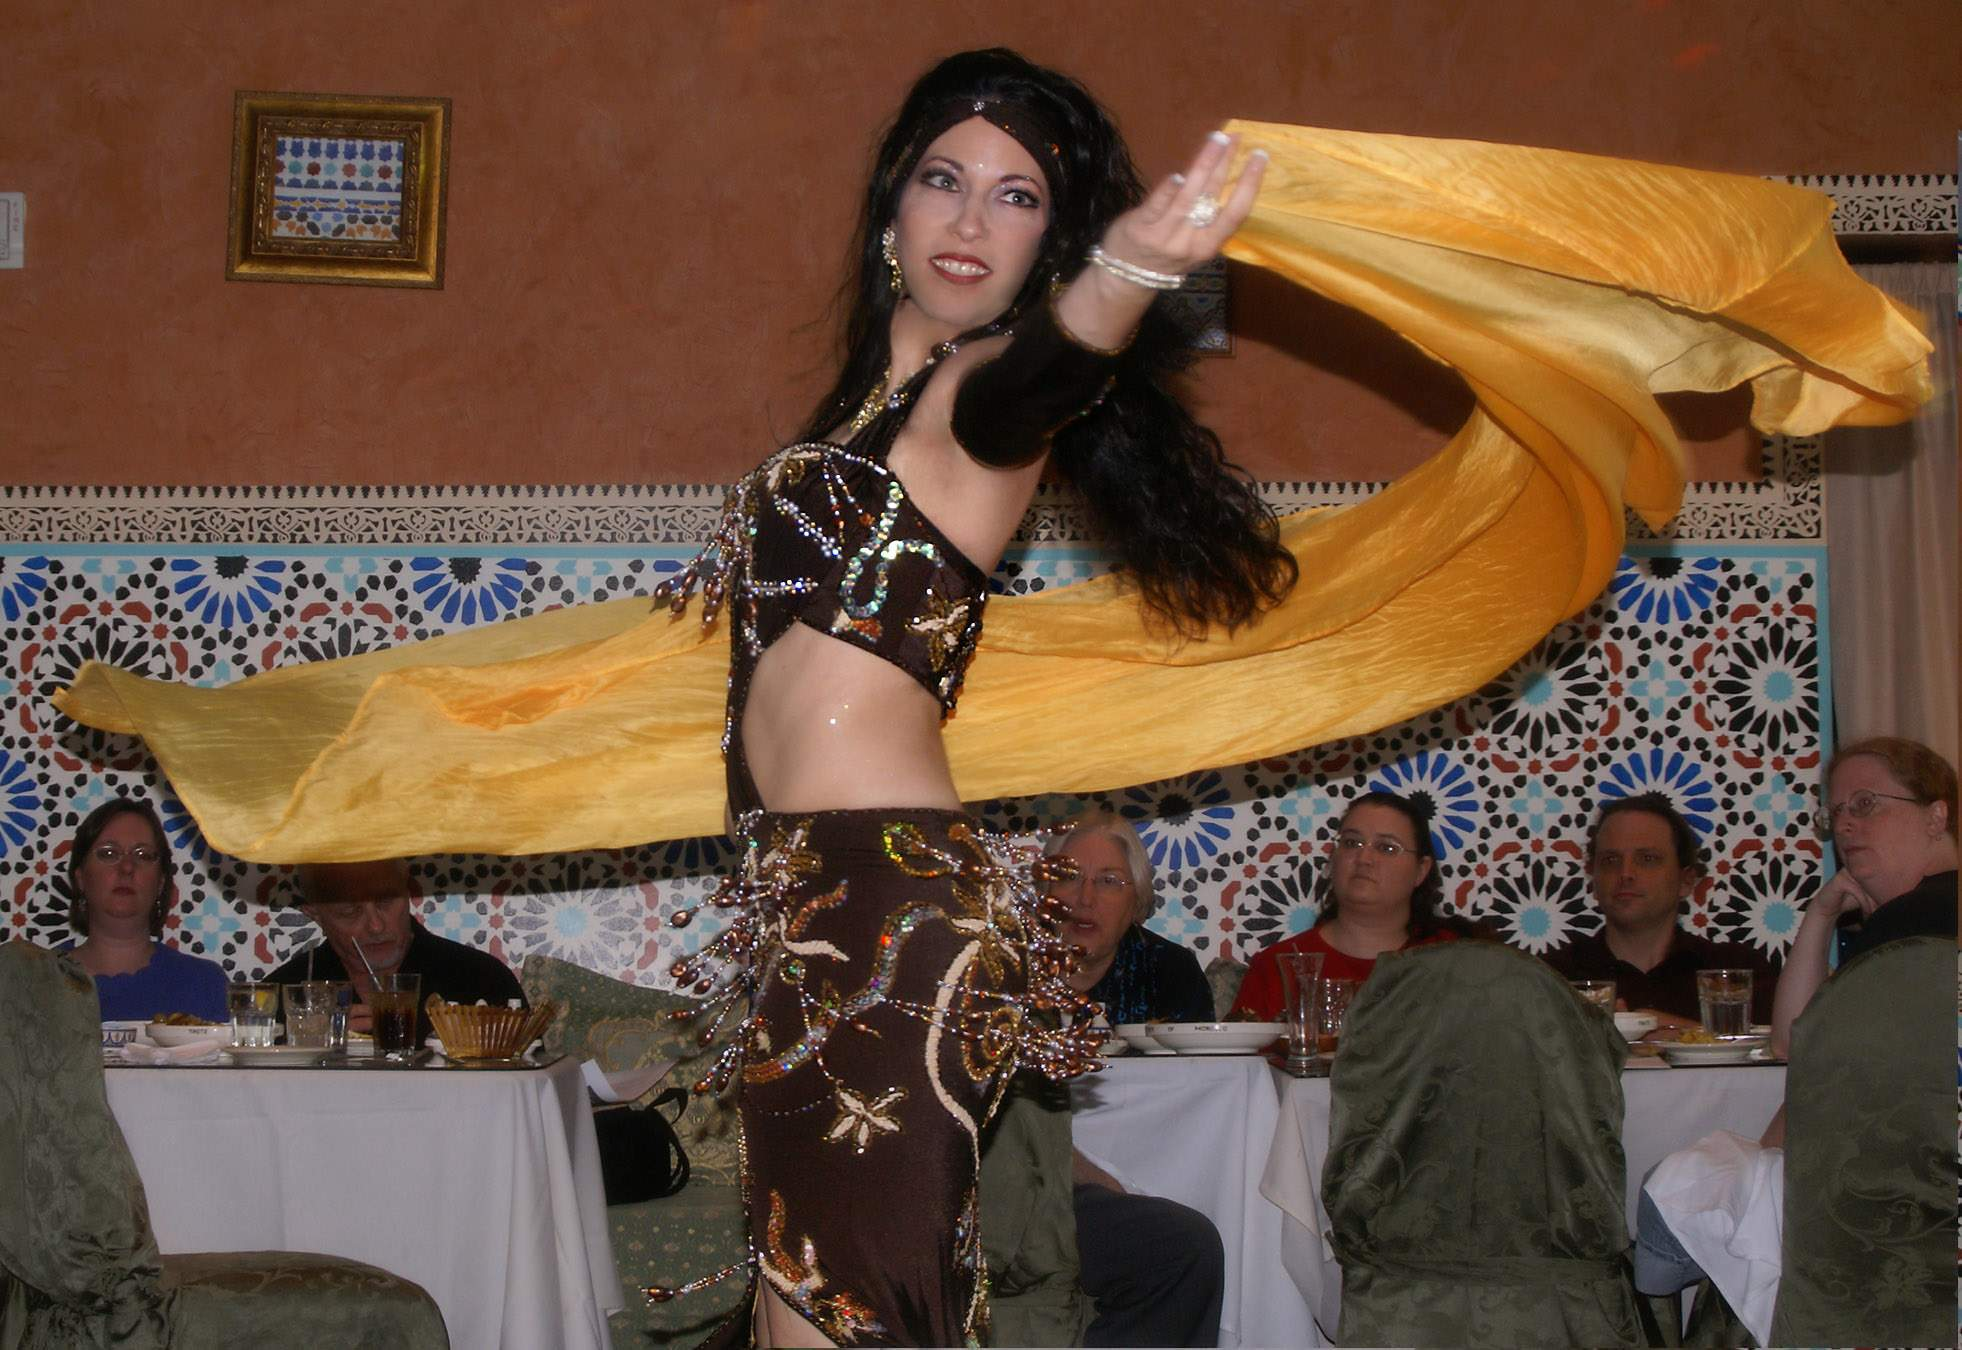 Dance, Of, Bachelorette, Lounge, Dinner, Rehearsal, Other, Parties, Moroccan, Belly, Belly dance by shadiyah, Shadiyah, Restaurants, Pasha, Taste, Morocco